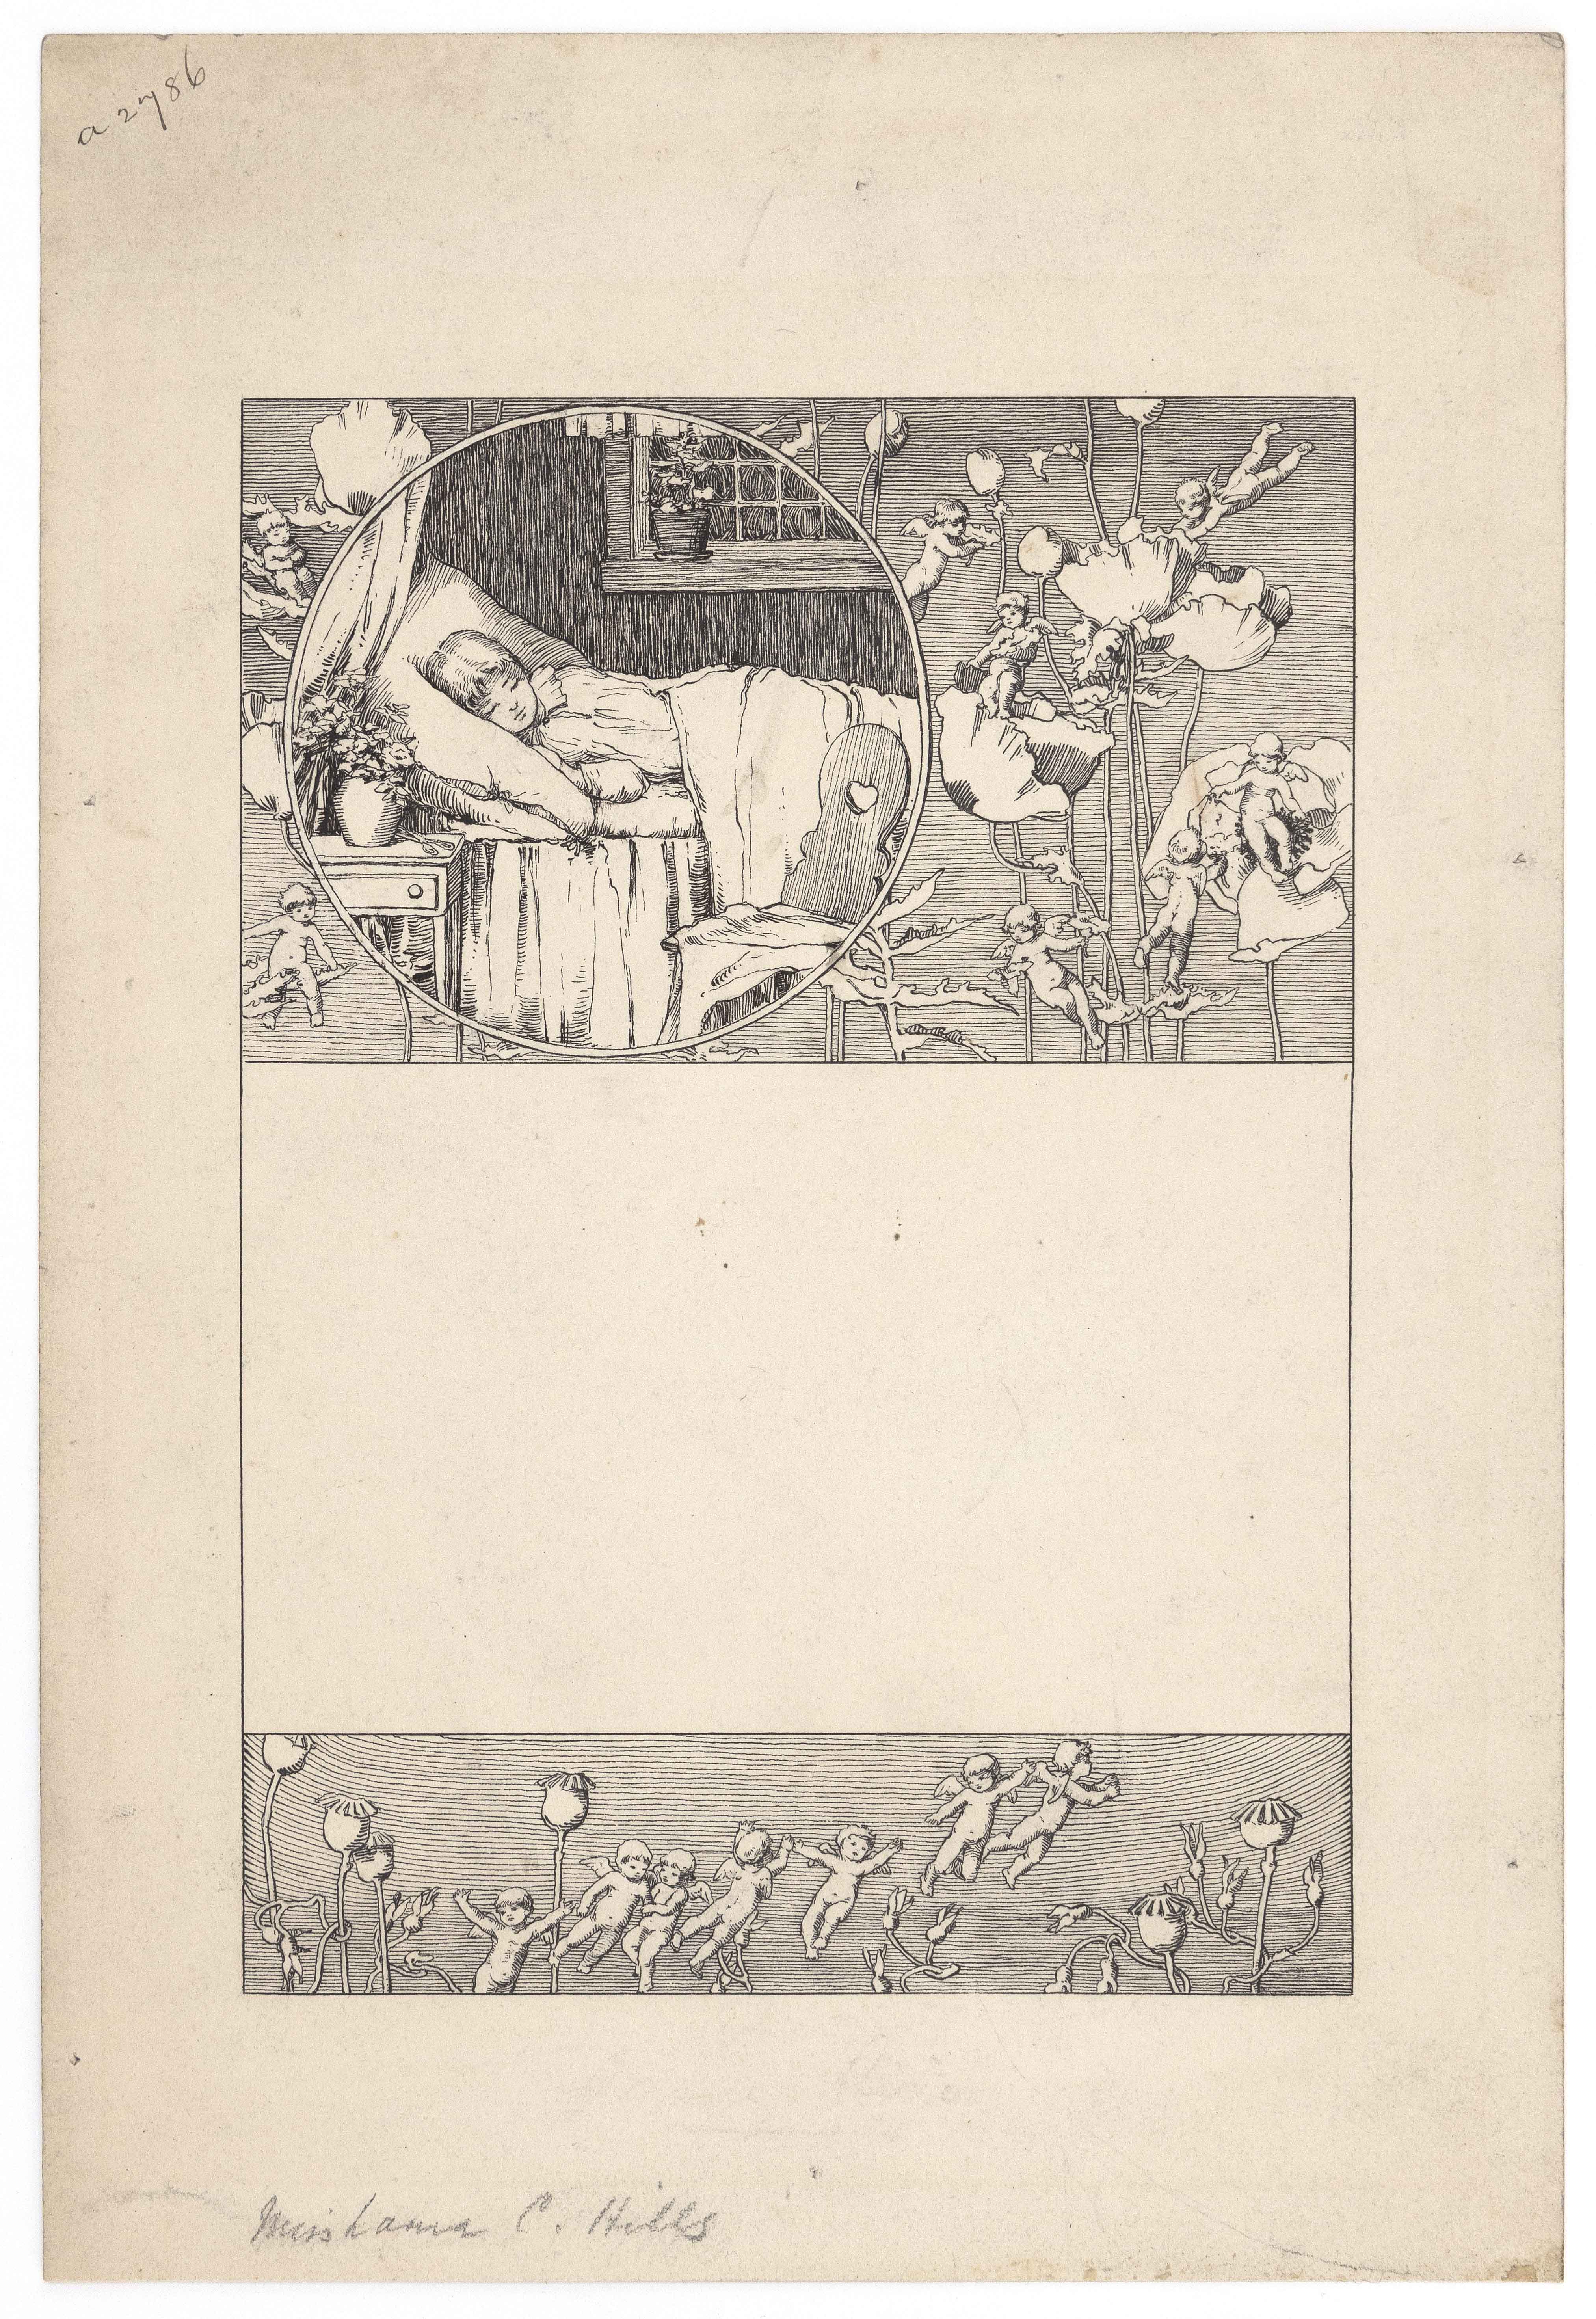 LAURA COOMBS HILLS (Massachusetts, 1859-1952), Study for a children's book restoration., Ink on paper, 11